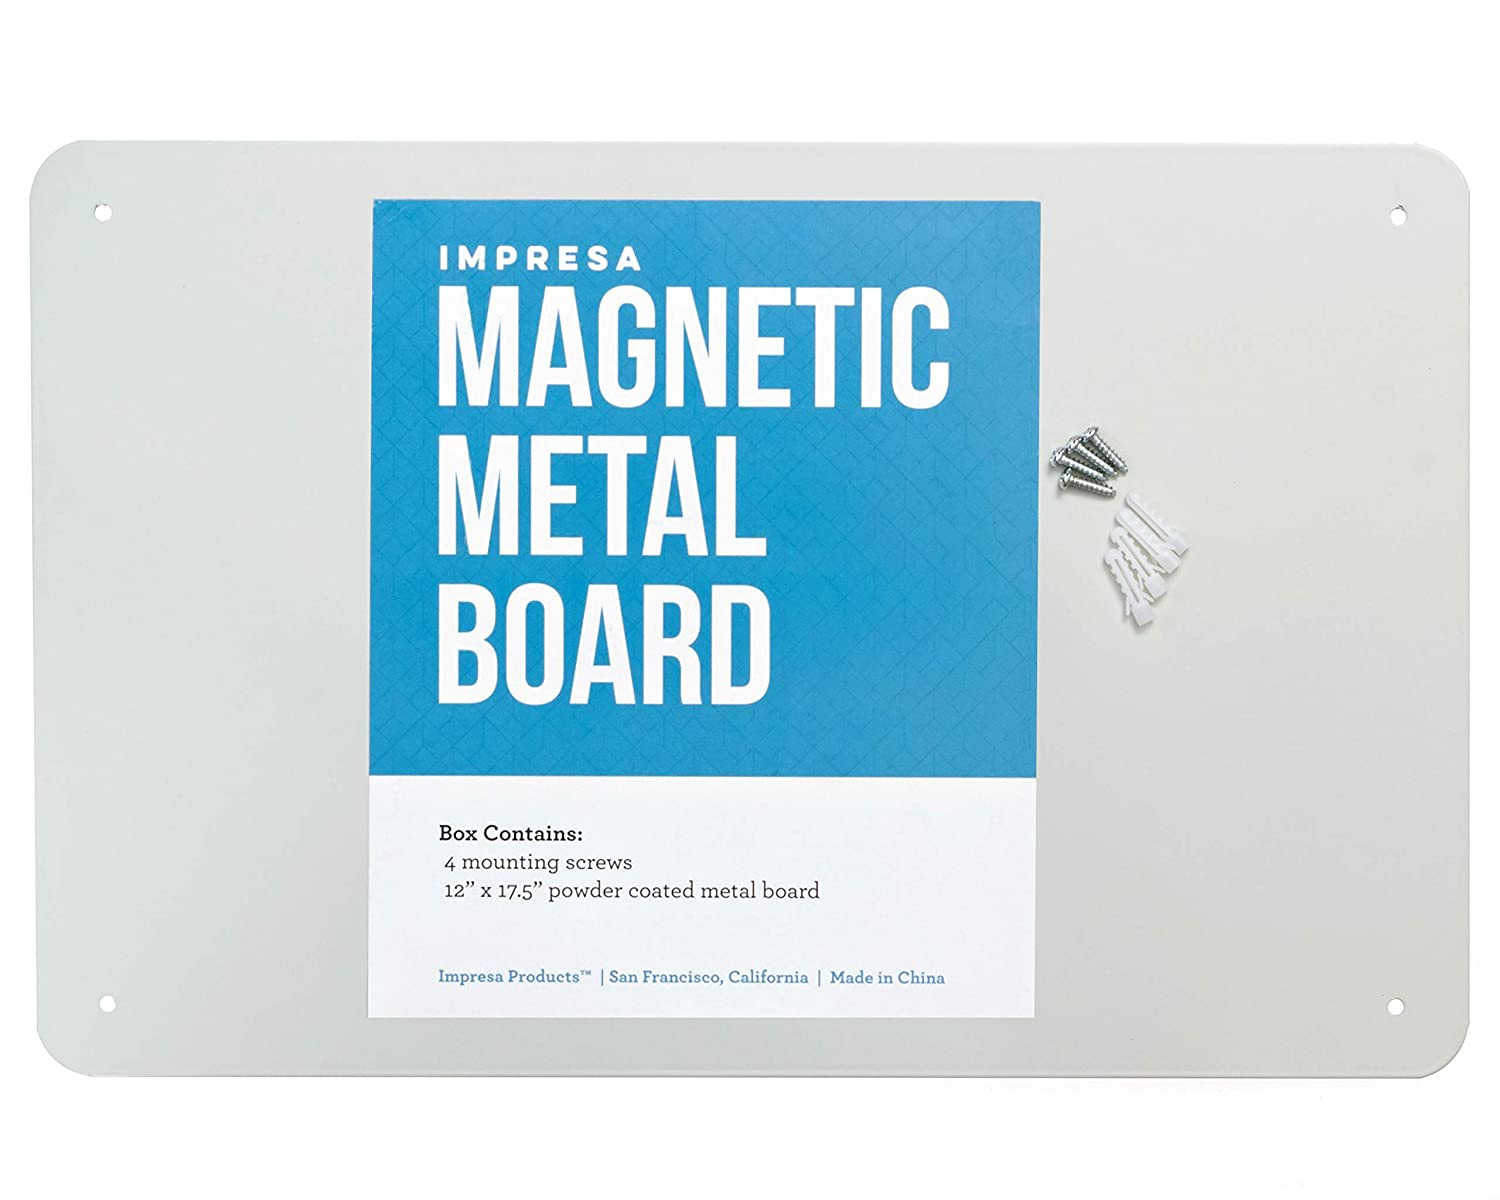 If you're looking for more ways to help organize your life, try organizing with magnets. It's easy to buy magnetic metal boards and canisters to help organize any room in the house.